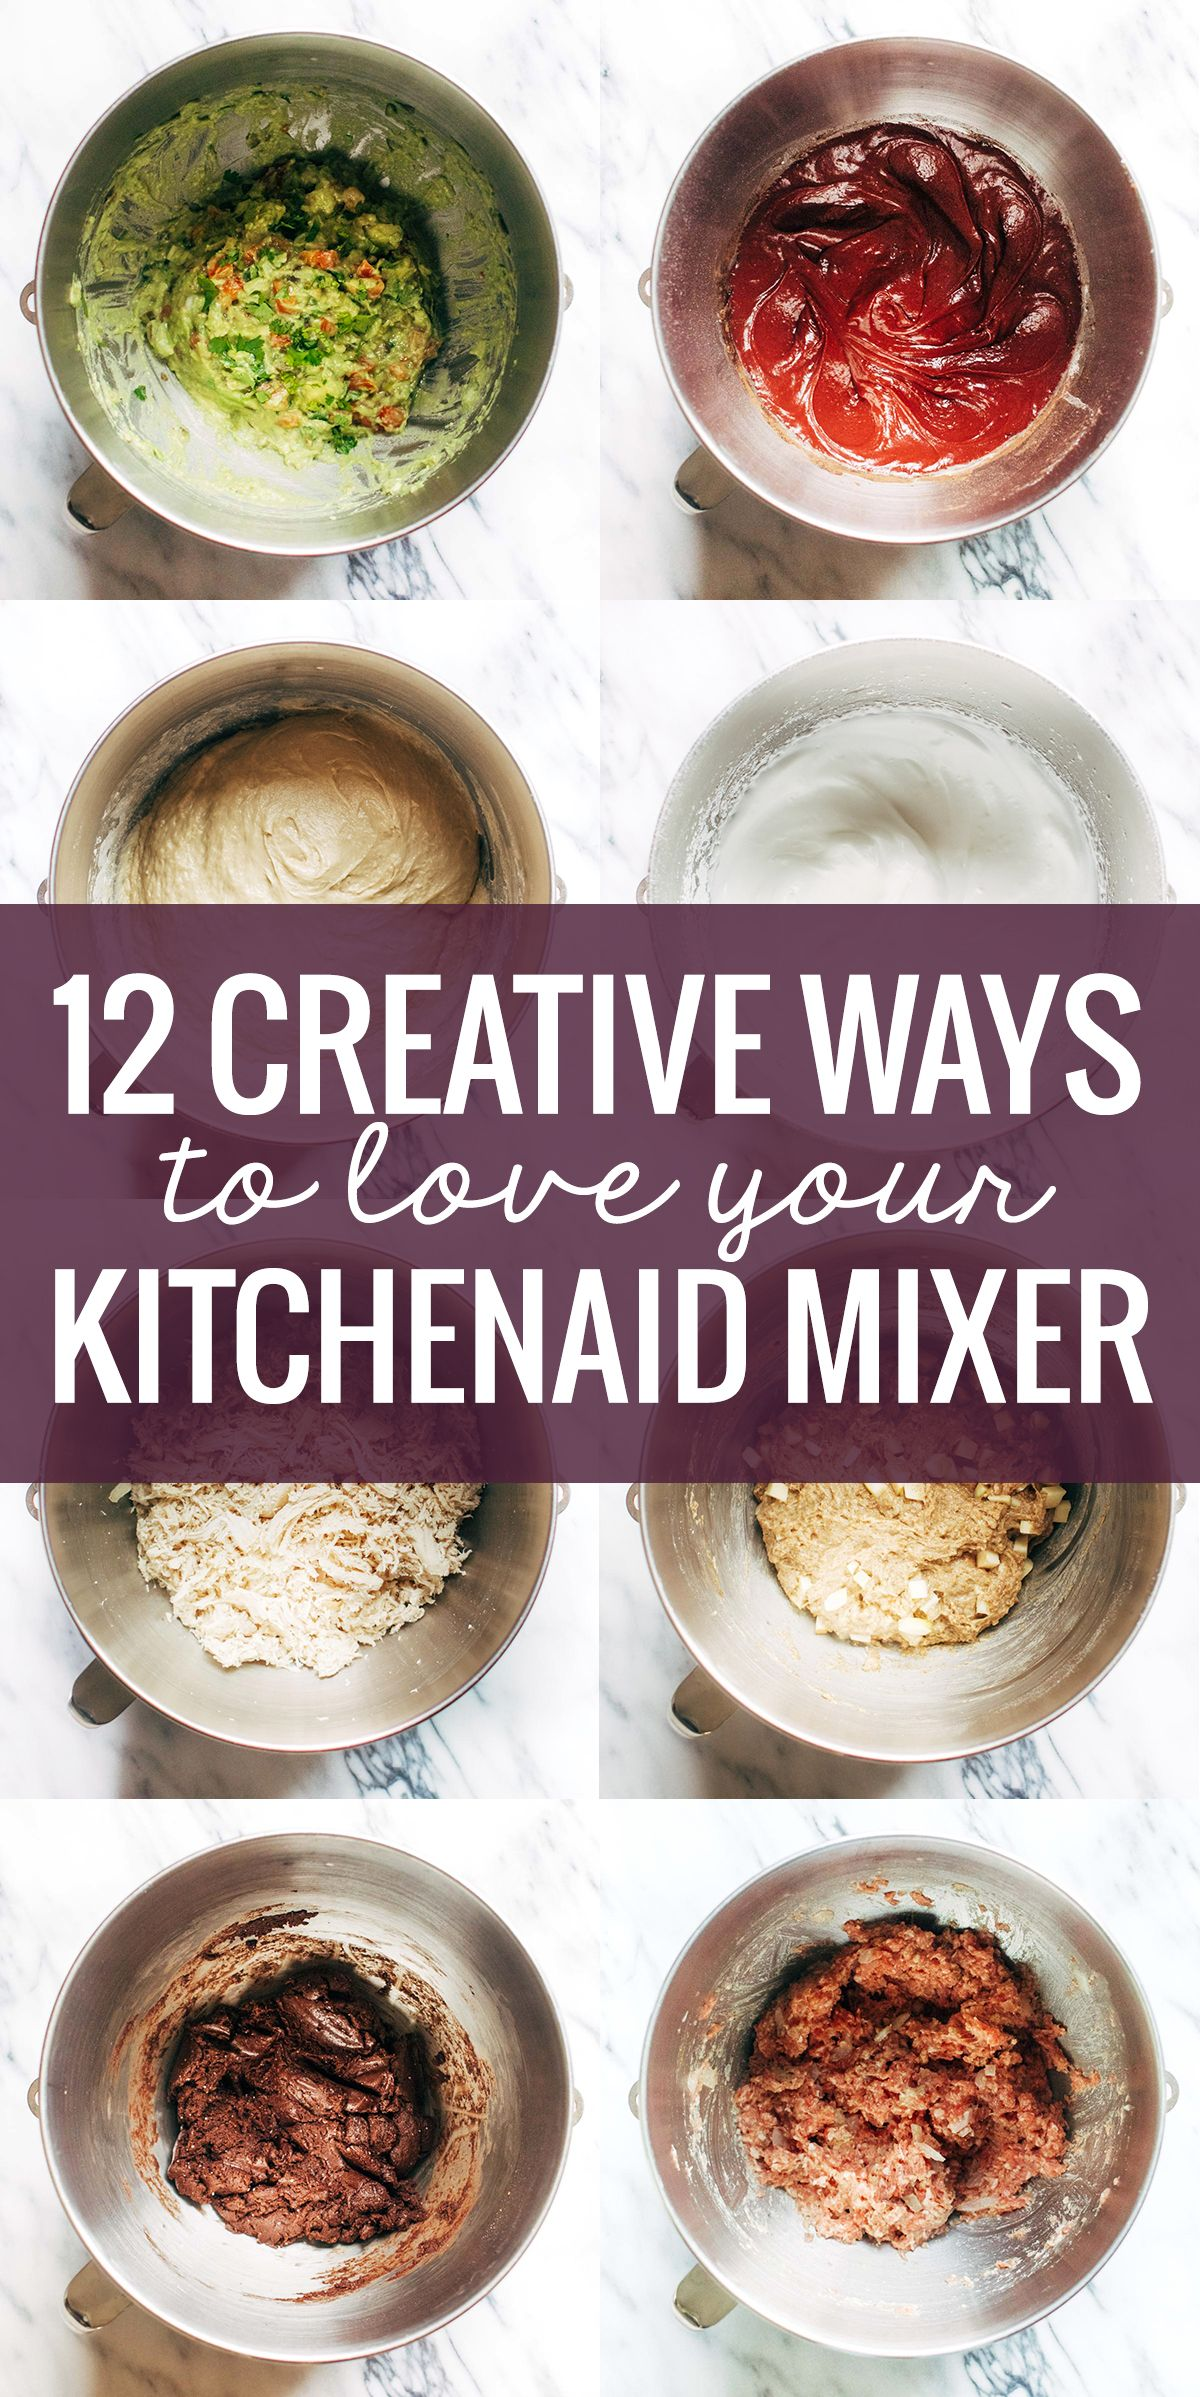 12 Creative Ways to Use A KitchenAid Mixer - Pinch of Yum